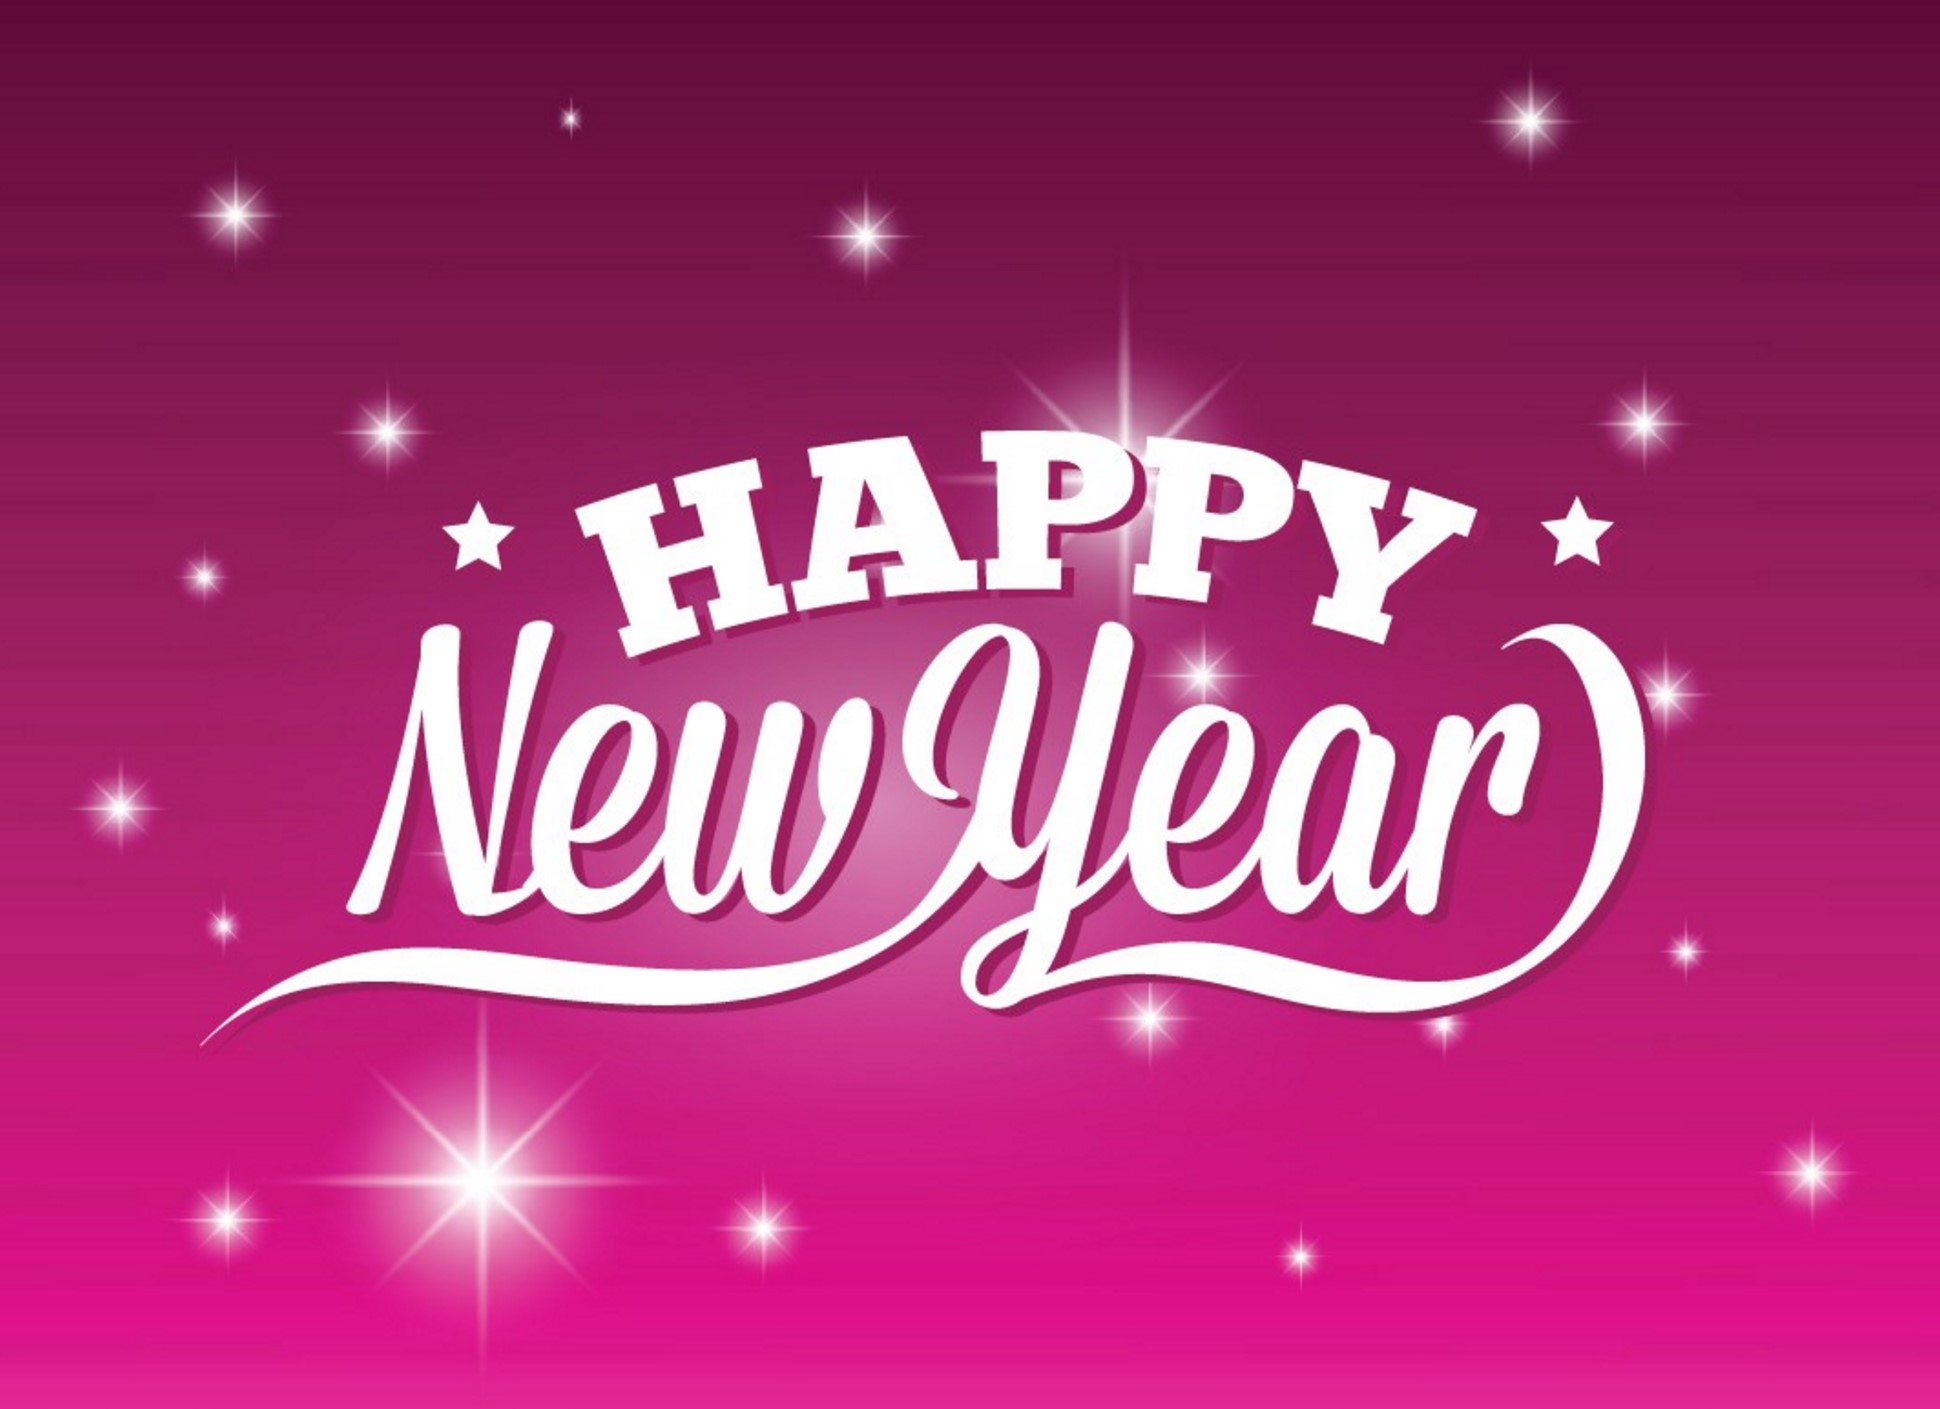 Happy New Year Pink Wallpaper